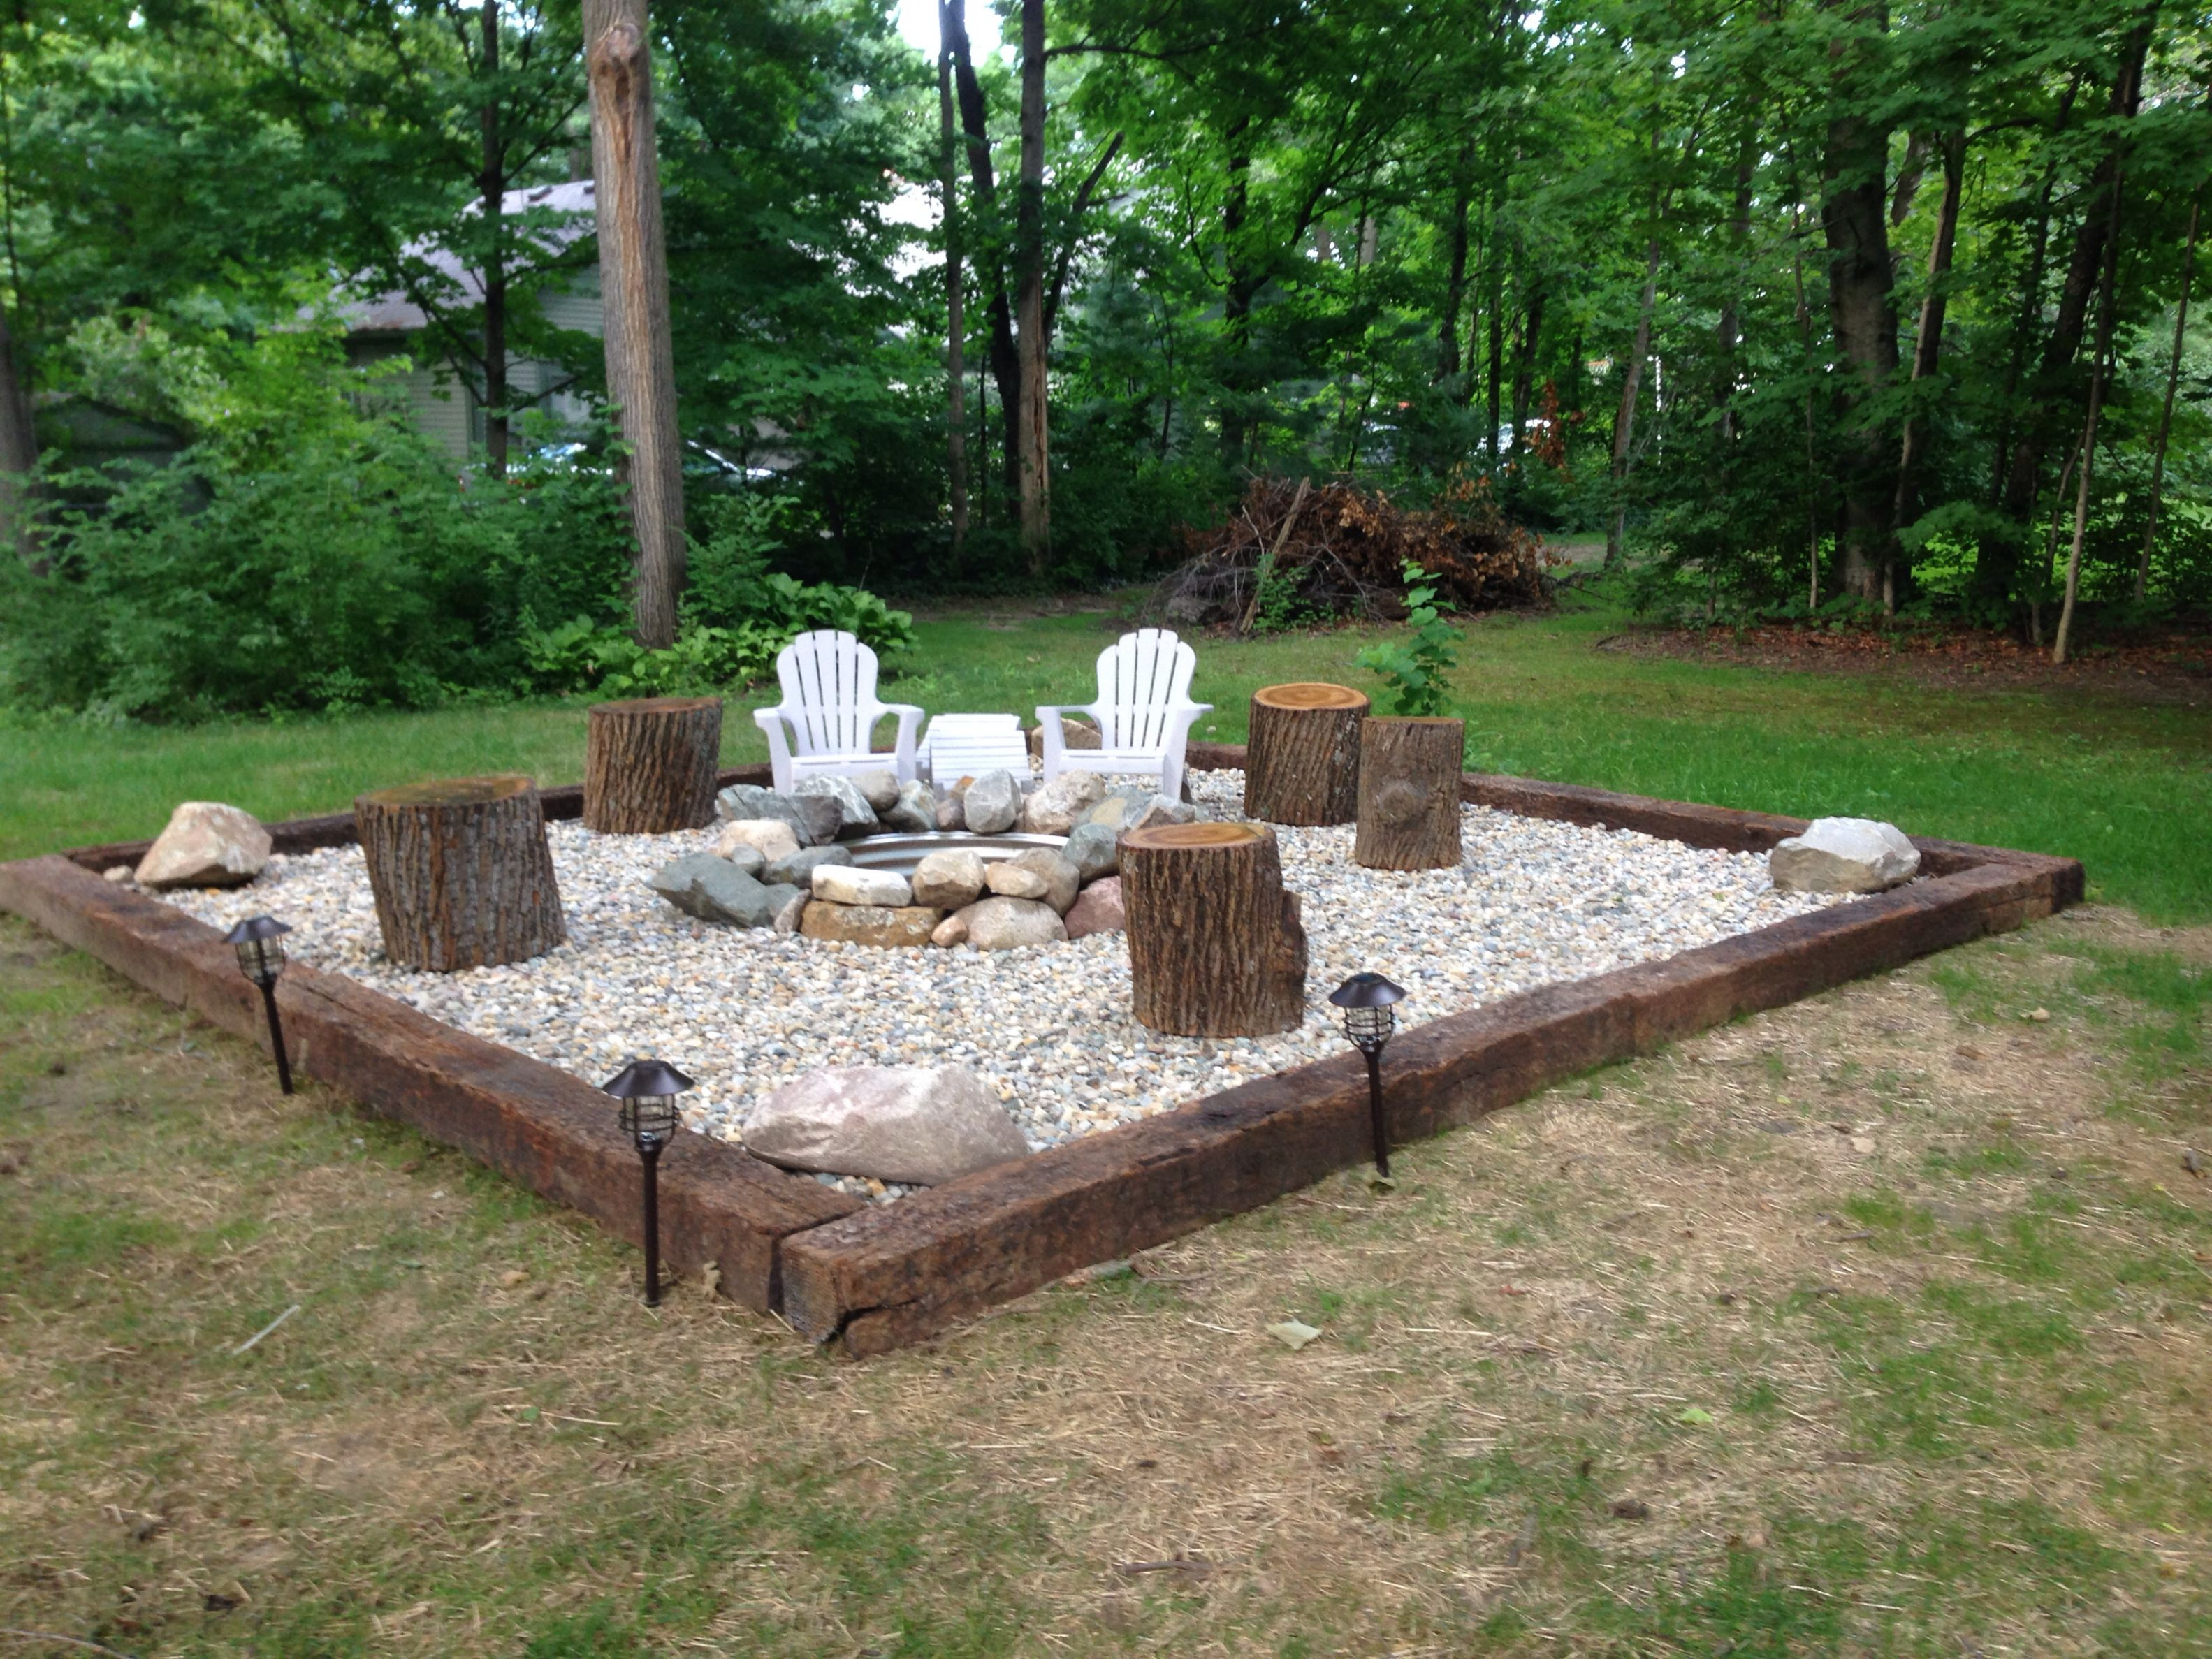 30 Best Backyard Fire Pit Area Inspirations For Your Cozy And Rustic with regard to measurements 3166 X 2375